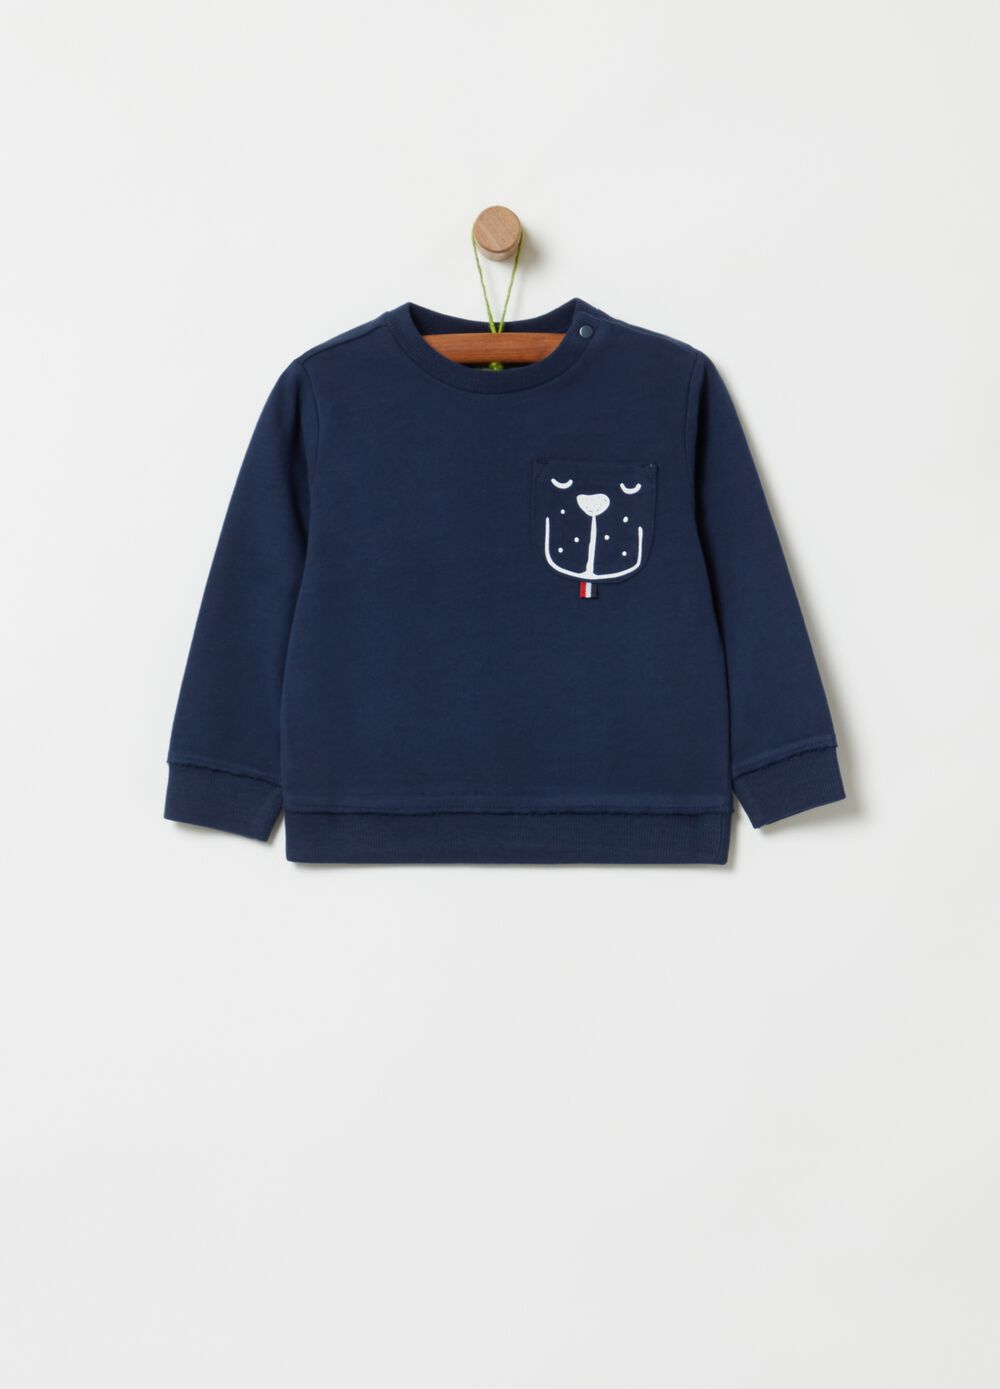 100% organic cotton sweatshirt with pocket